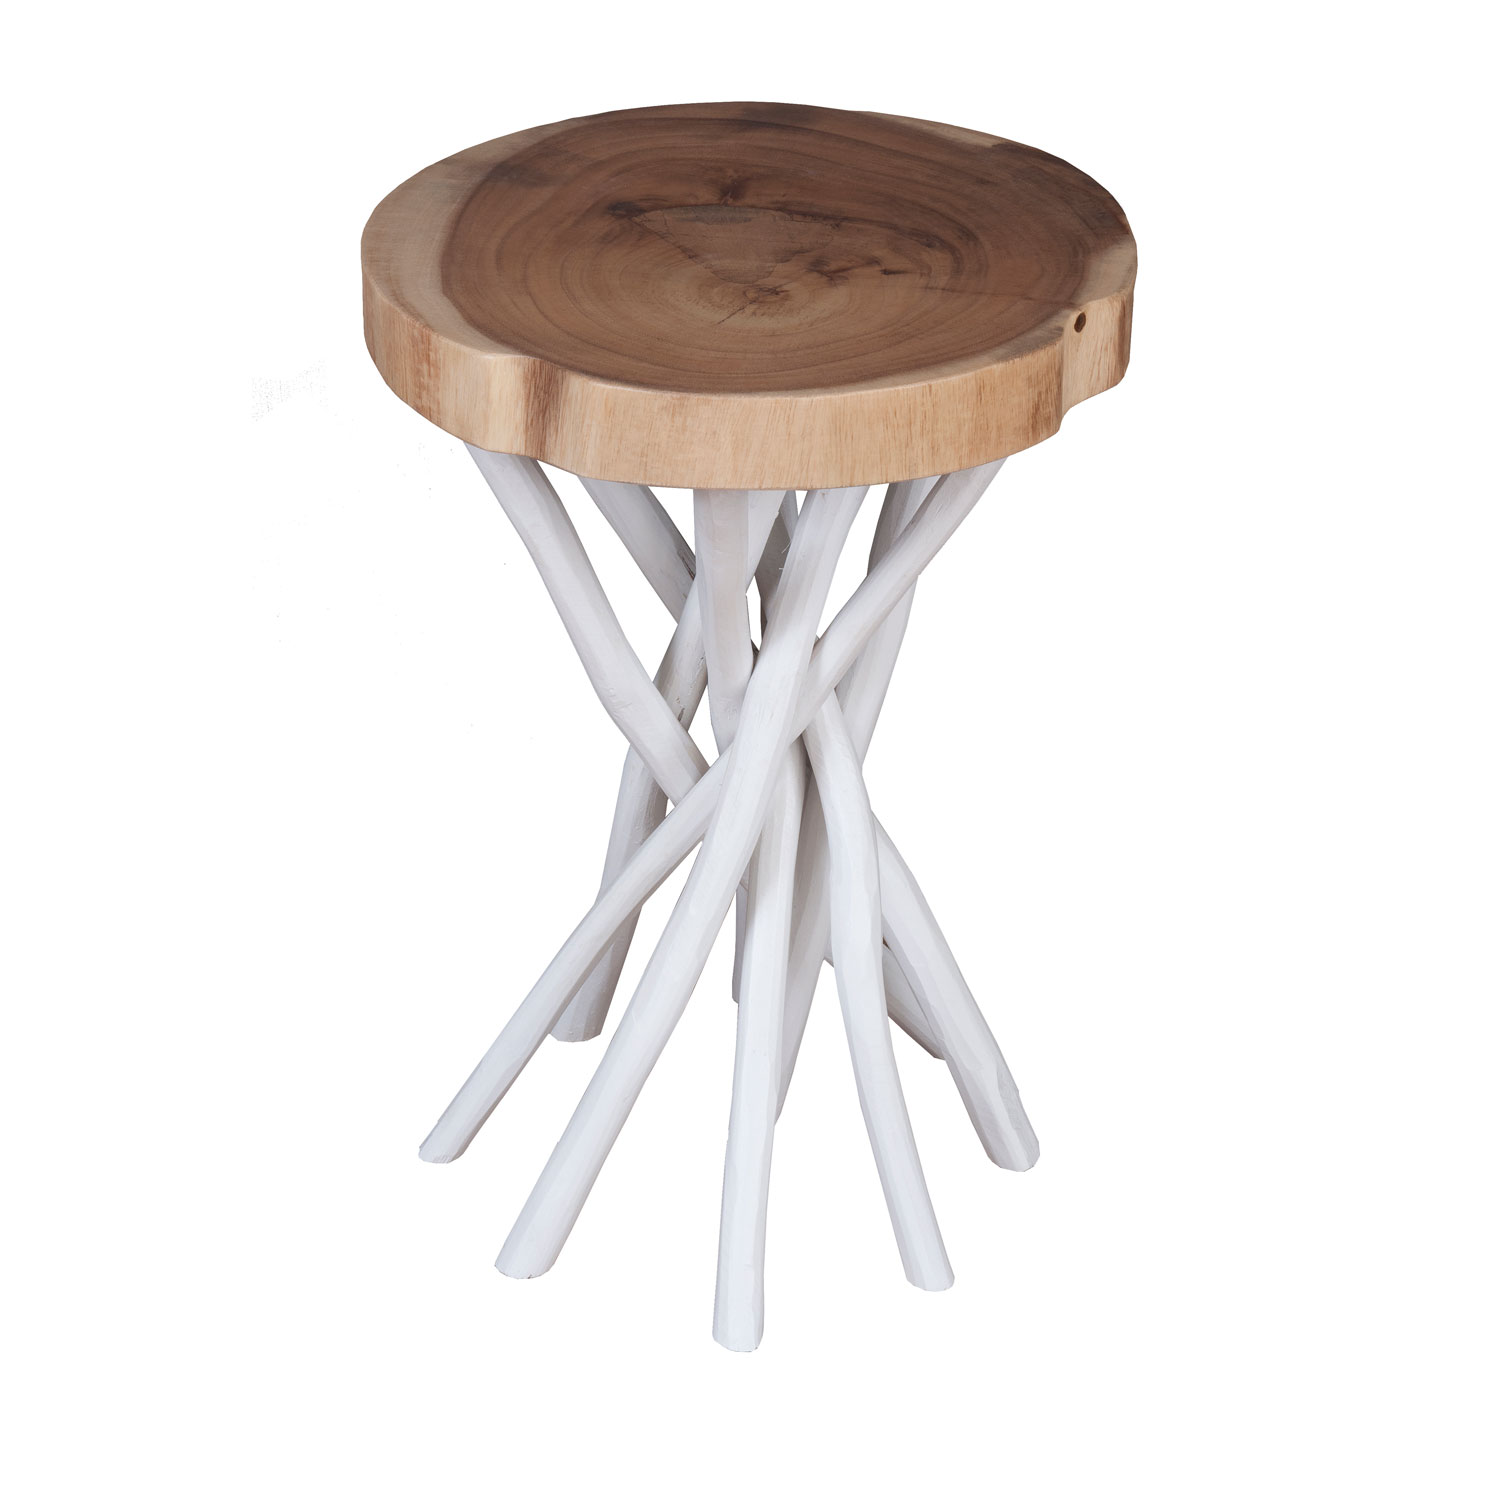 east main lancer white teakwood round accent table hover zoom small metal outside tables oak side tree lamp outdoor glass top oversized umbrellas monarch specialities coffee